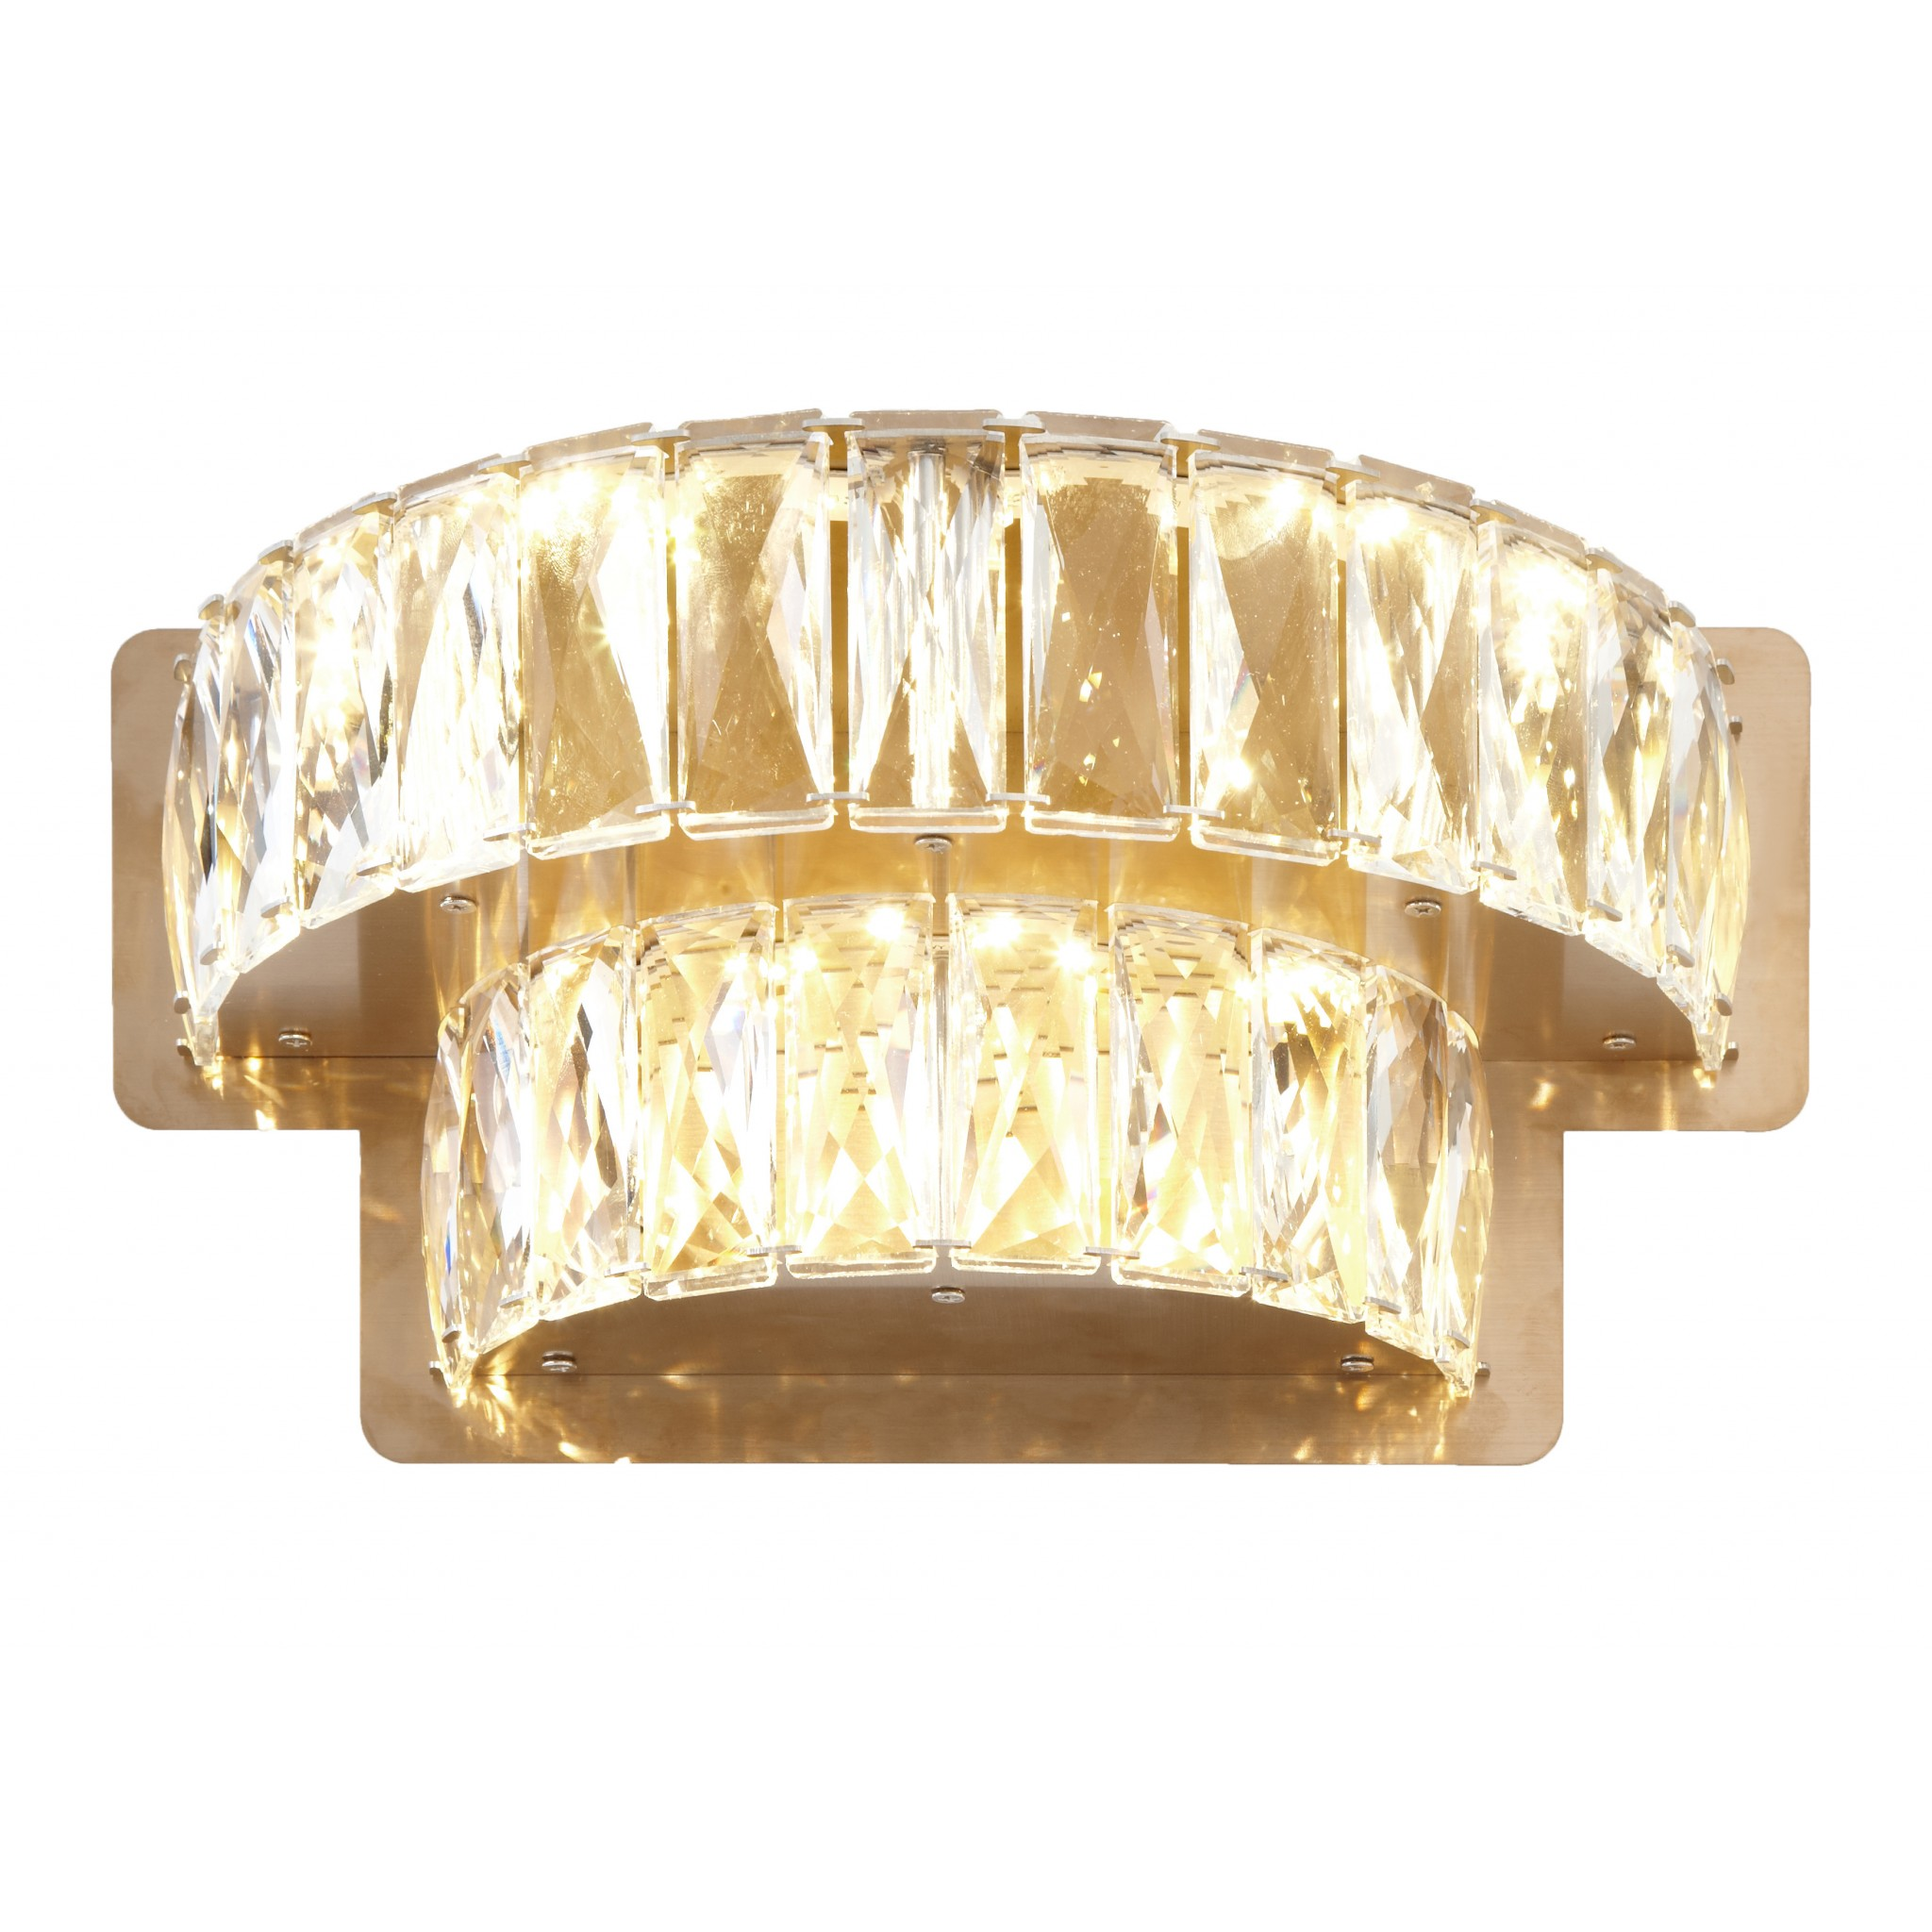 RV Astley Giness Crystal 2 Tier Wall Light